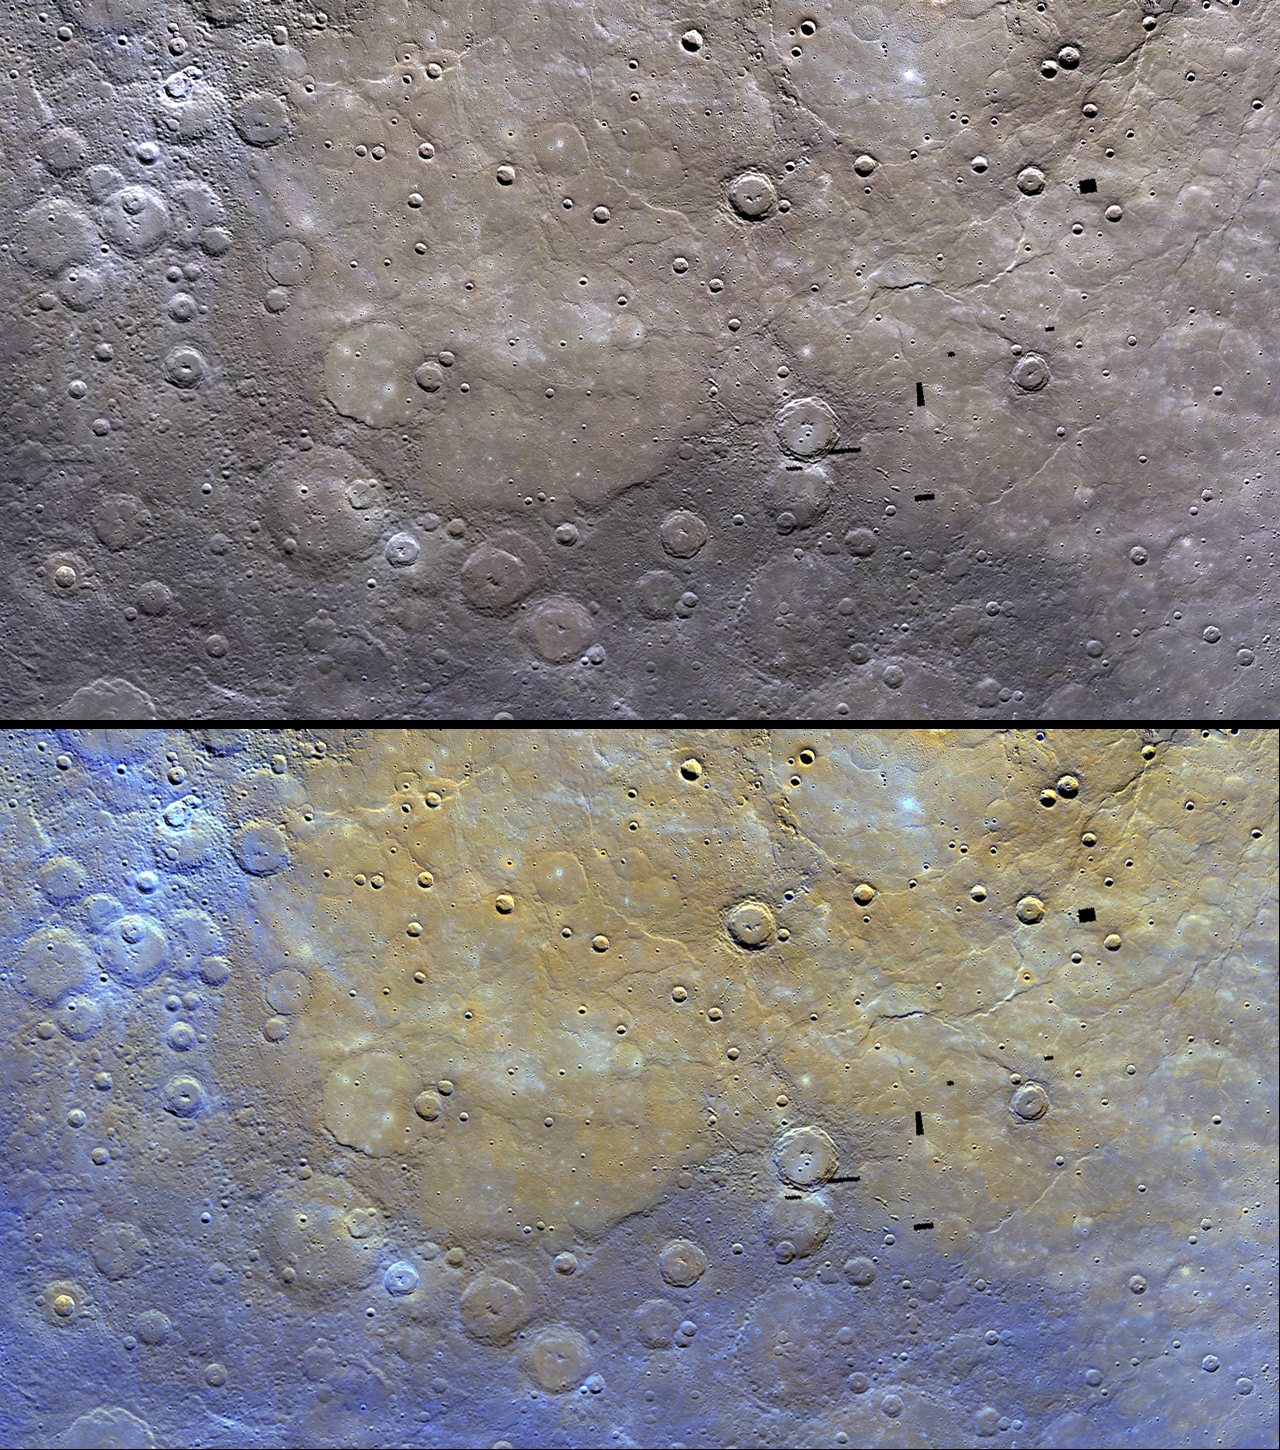 Mercury's Surface Resembles Rare Meteorites